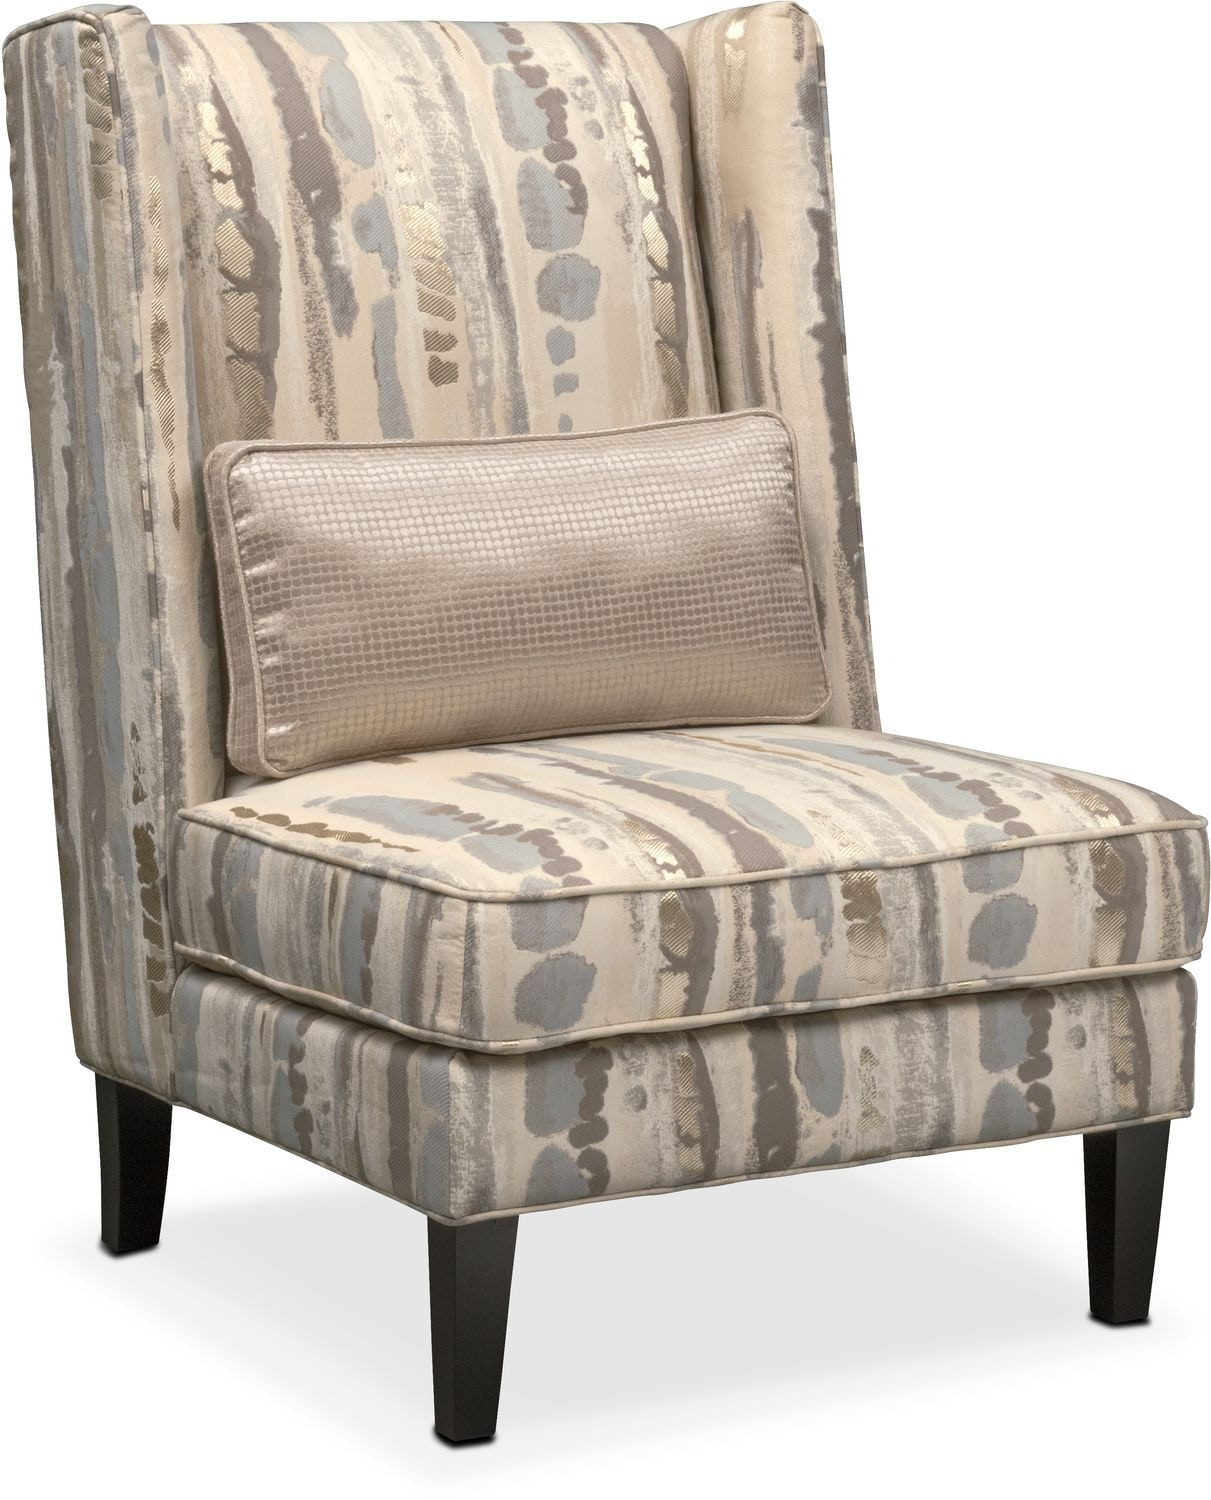 Light Gray Accent Chairs Torrance Accent Chair Light Gray American Signature